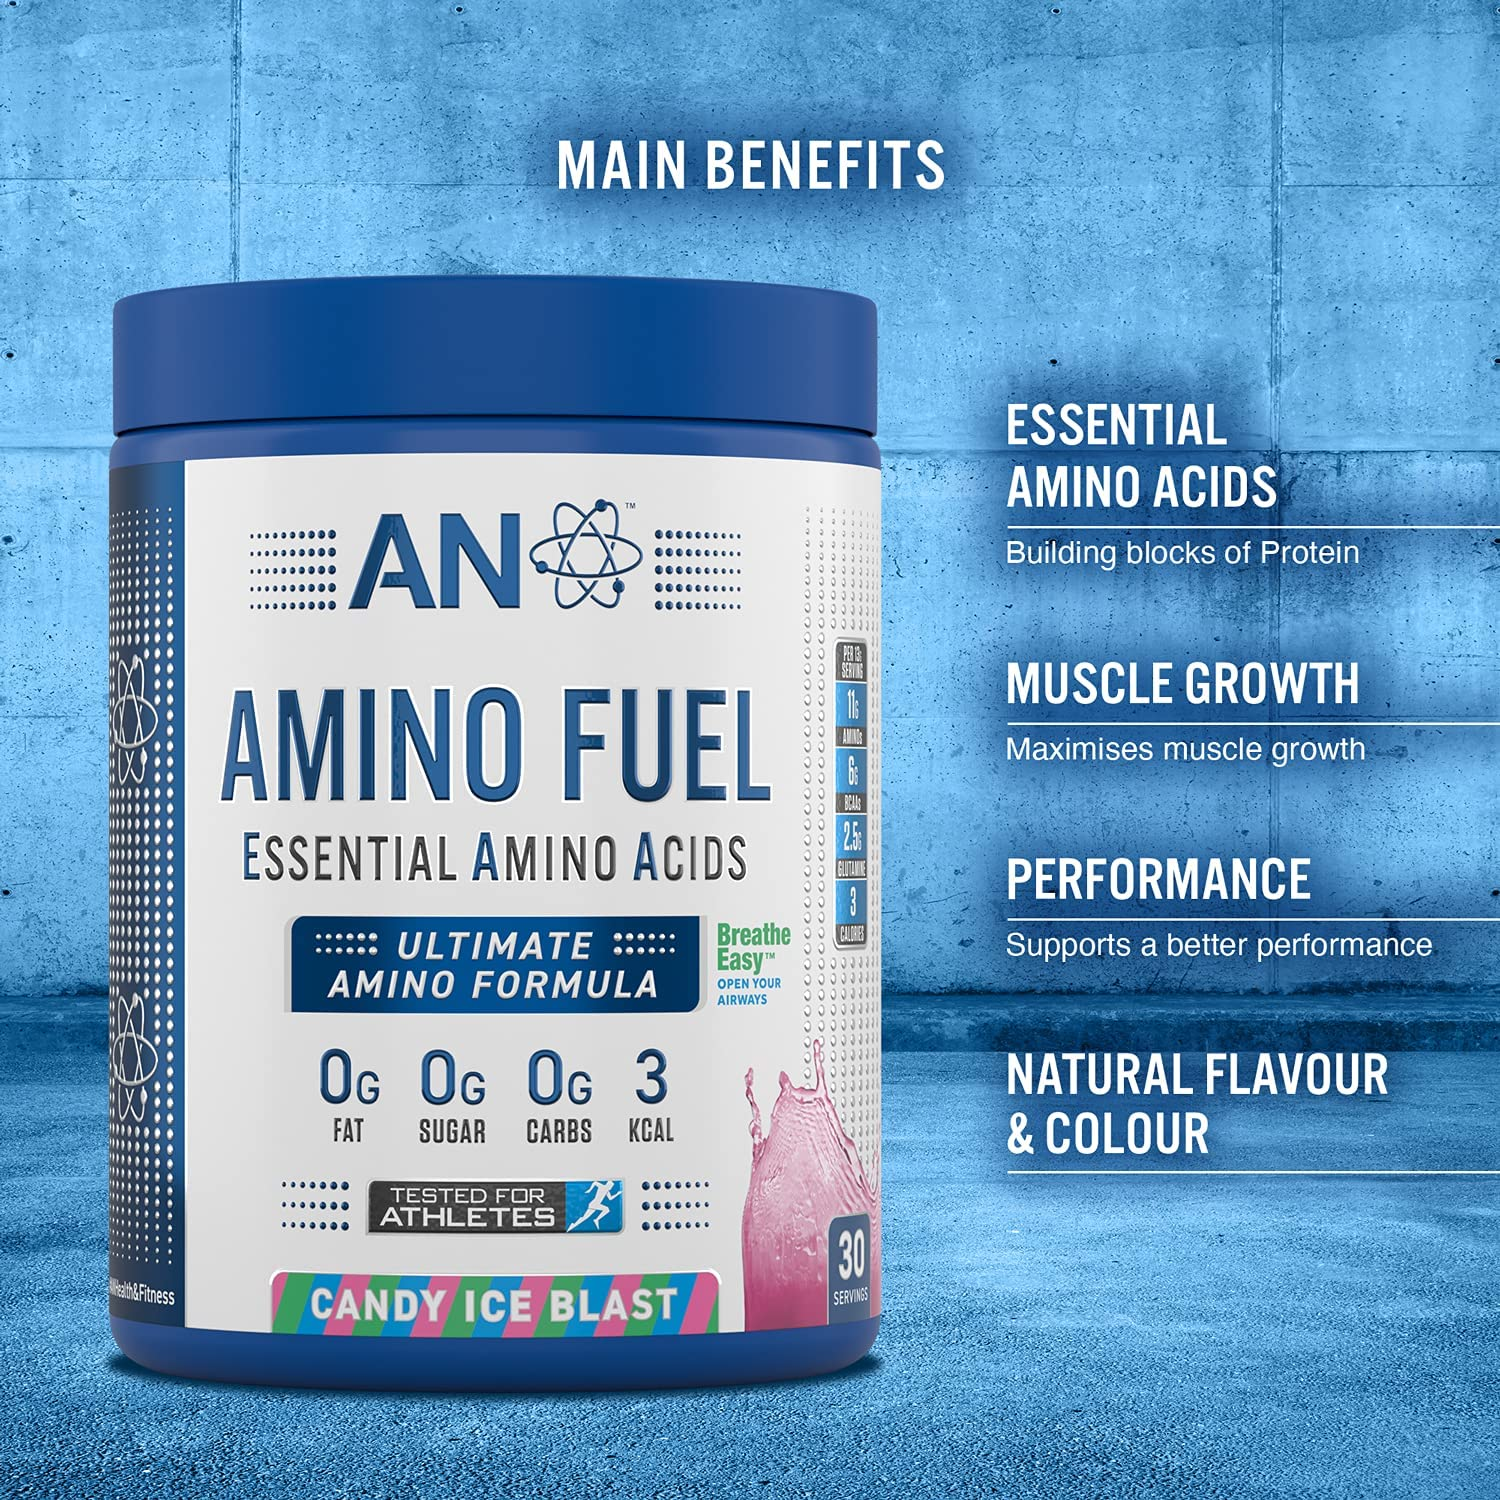 Applied Nutrition Amino Fuel - Essential Amino Acid (EAA) Powder Supplement Maximize Muscle Growth, 11g of Aminos Per Serving with BCAA's 390g - 30 Servings (ICY Blue Raz) : Amazon.co.uk: Health &